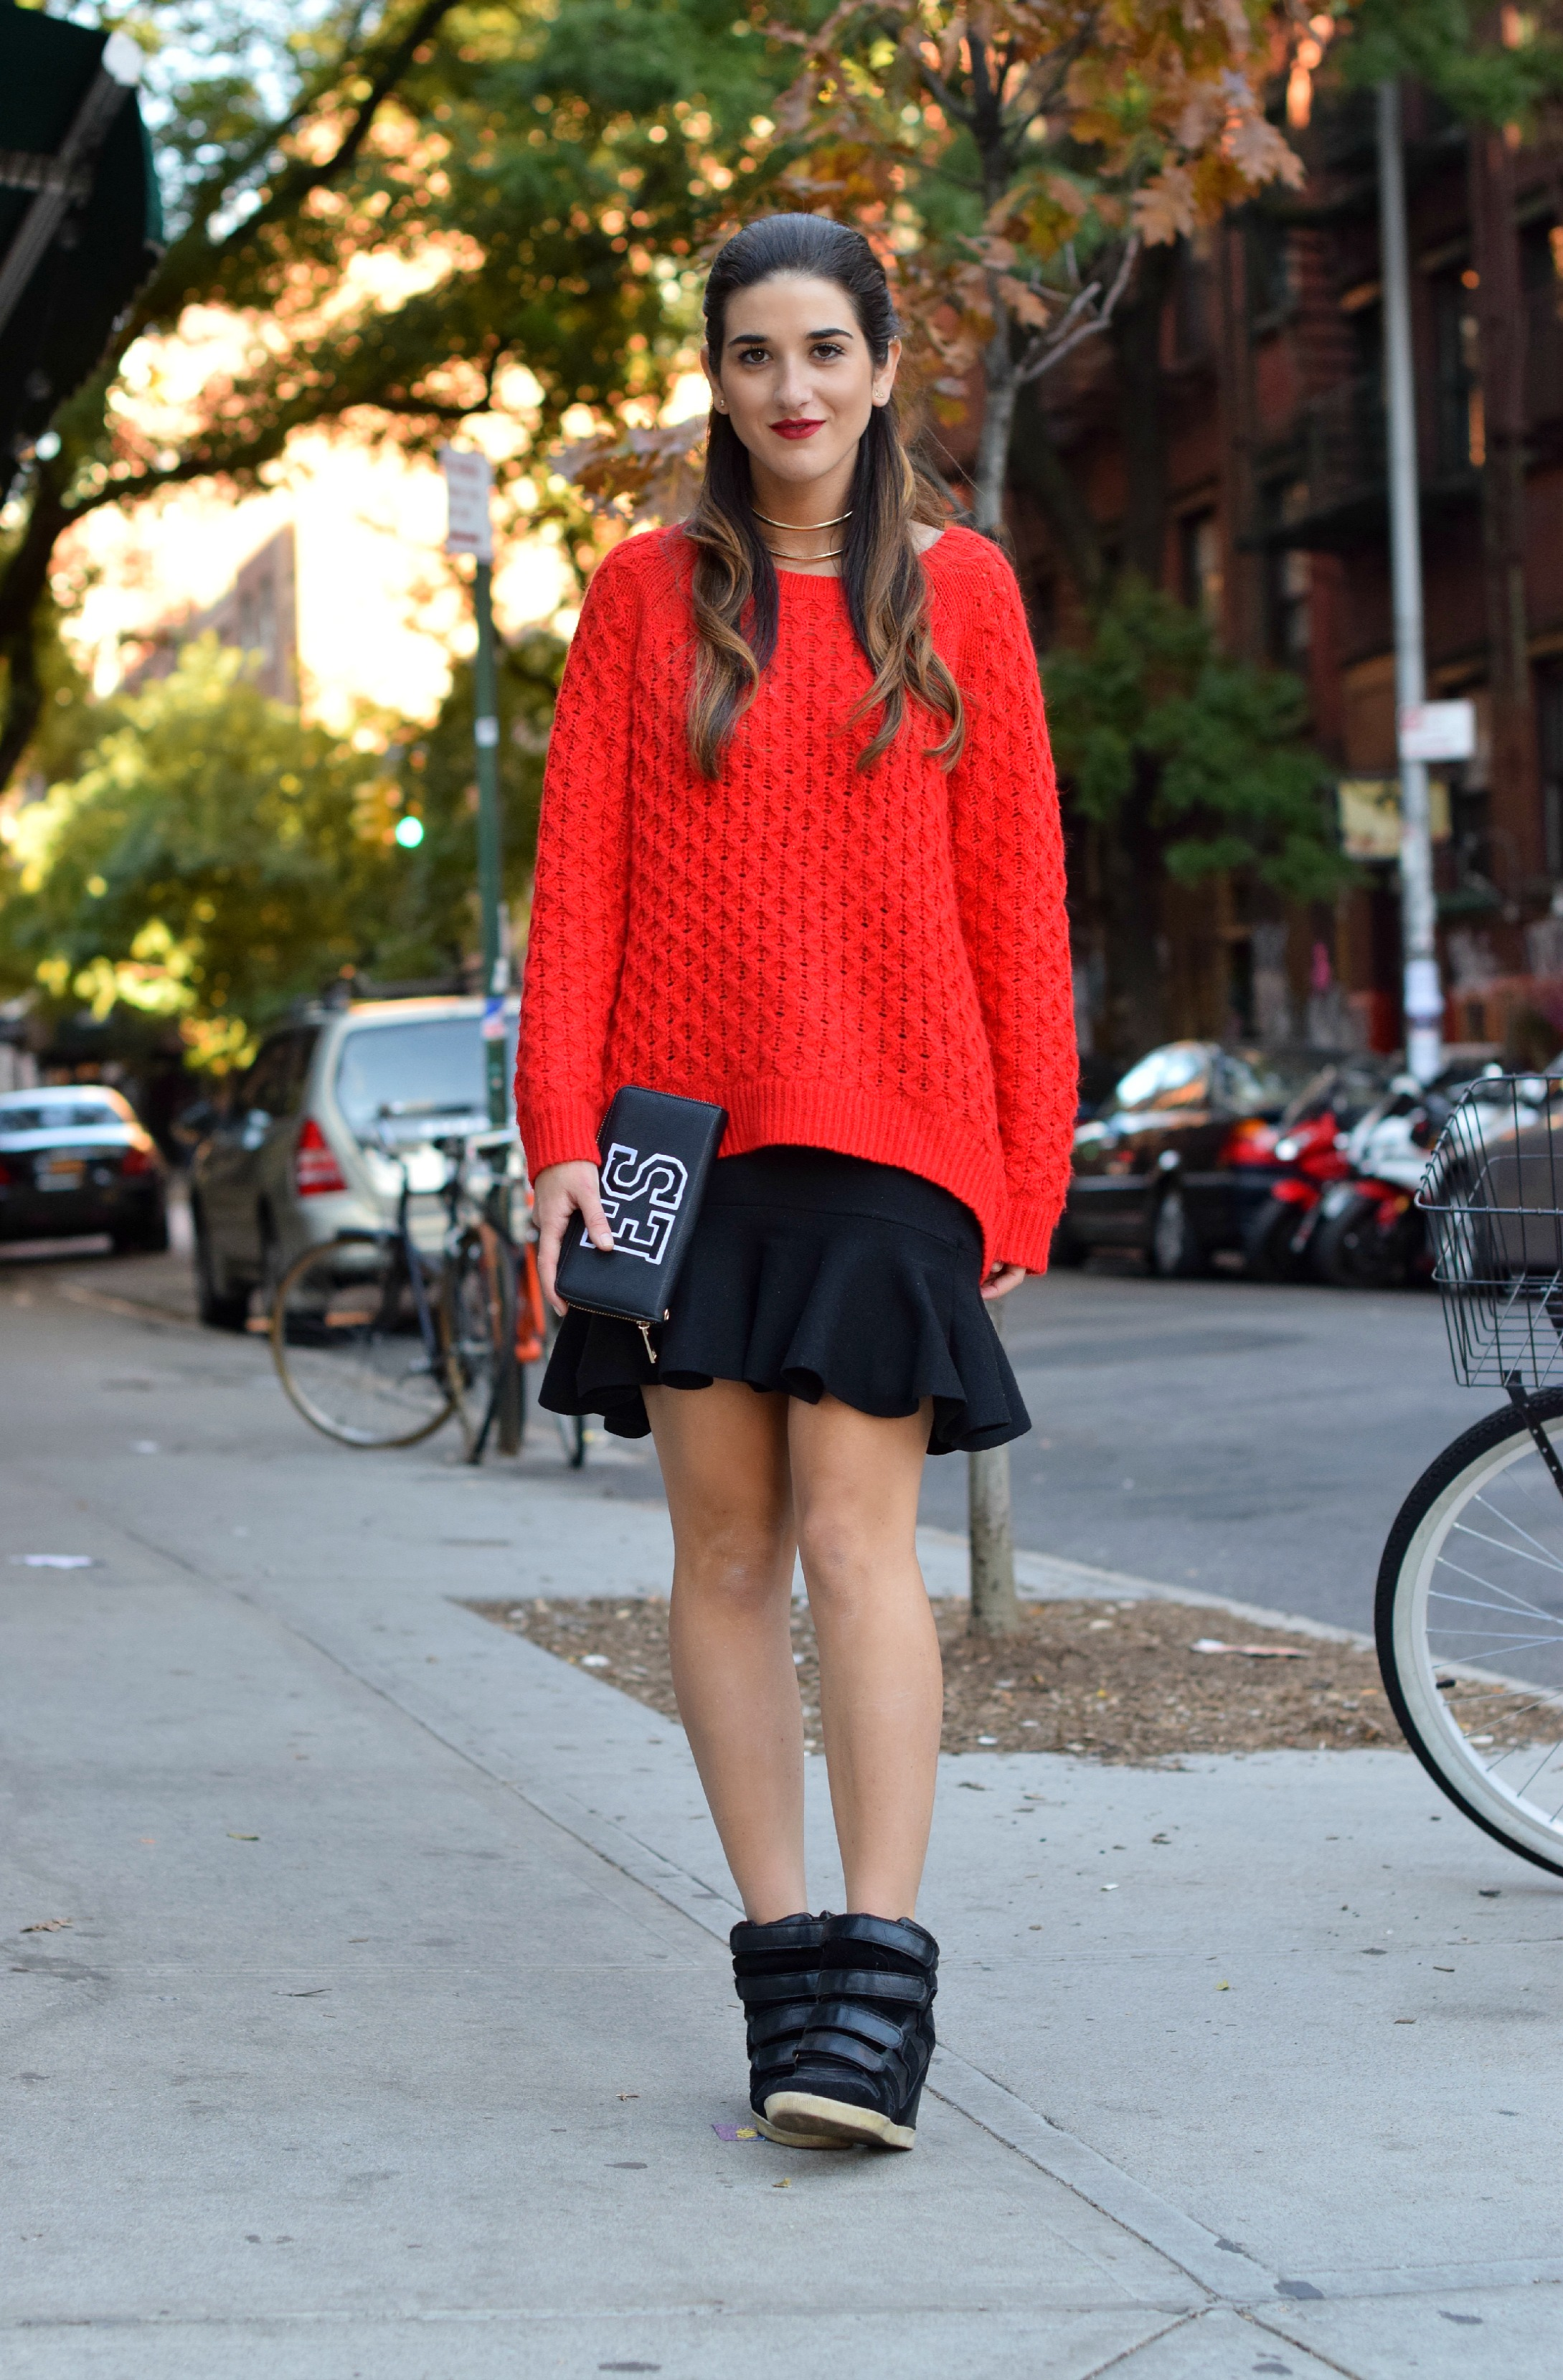 Red Sweater Black Ruffled Skirt Wow Couture Louboutins & Love Fashion Blog Esther Santer NYC Street Style Blogger Outfit OOTD Gold Collar Necklace Fall Winter Look Hair Inspo Inspiration How To Wear Shop Chunky Knits Women Girl Photoshoot Soho Wearing.jpg